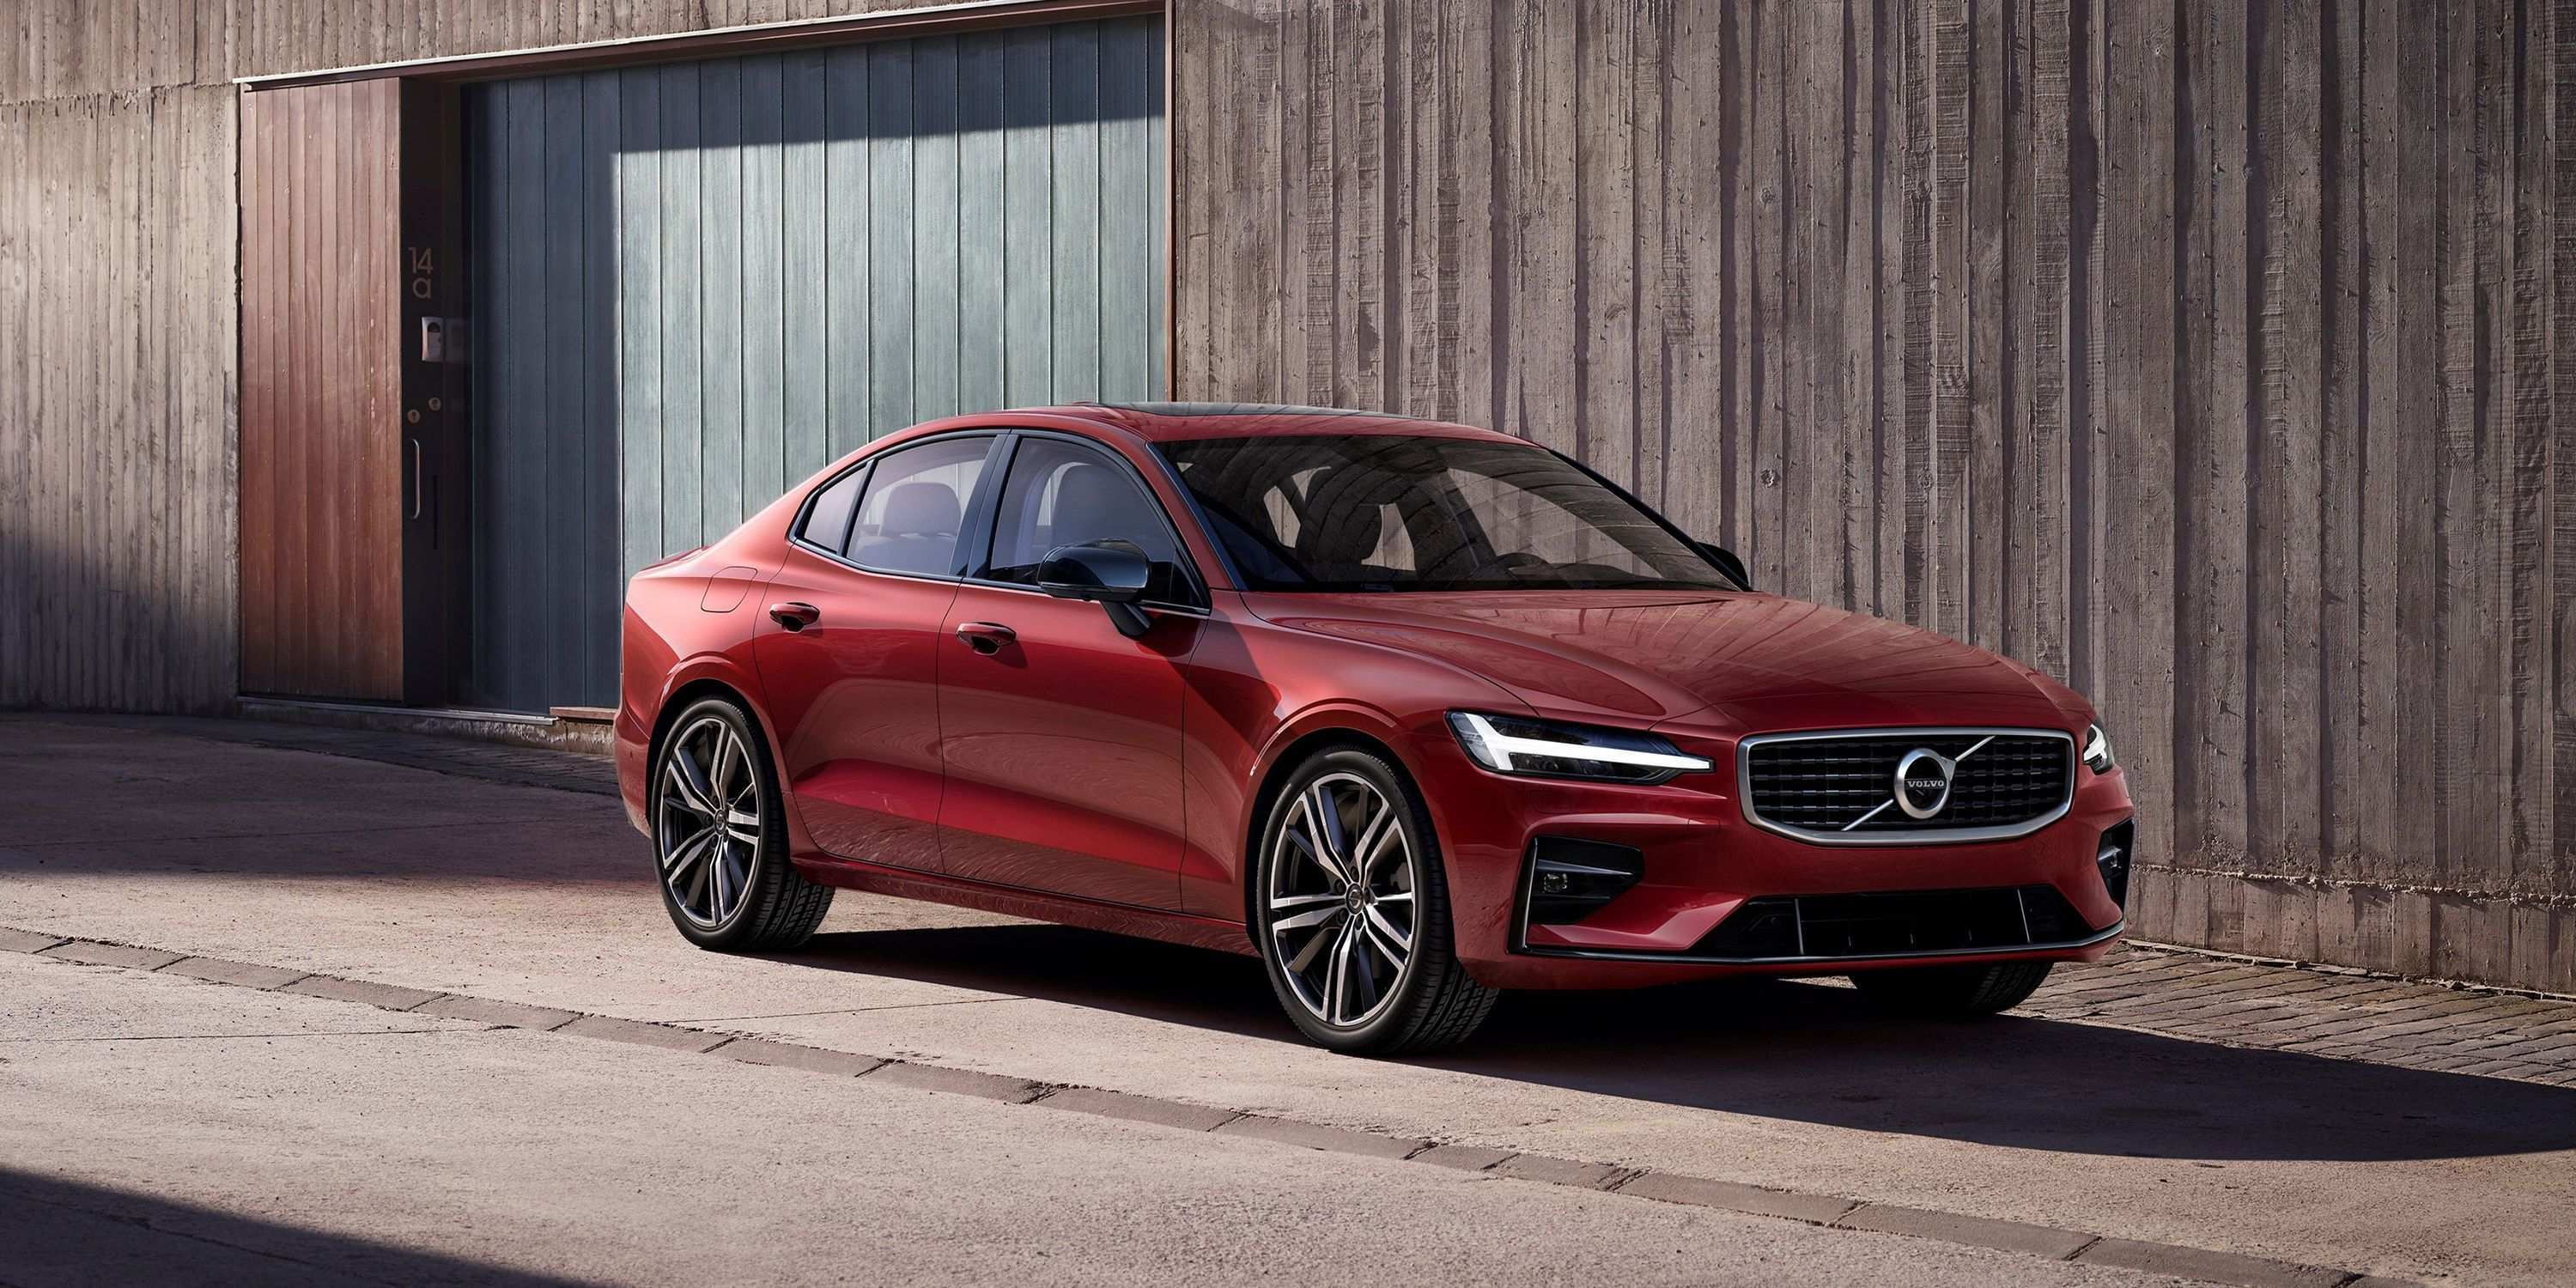 24 Gallery of Volvo S60 2020 New Concept Price for Volvo S60 2020 New Concept